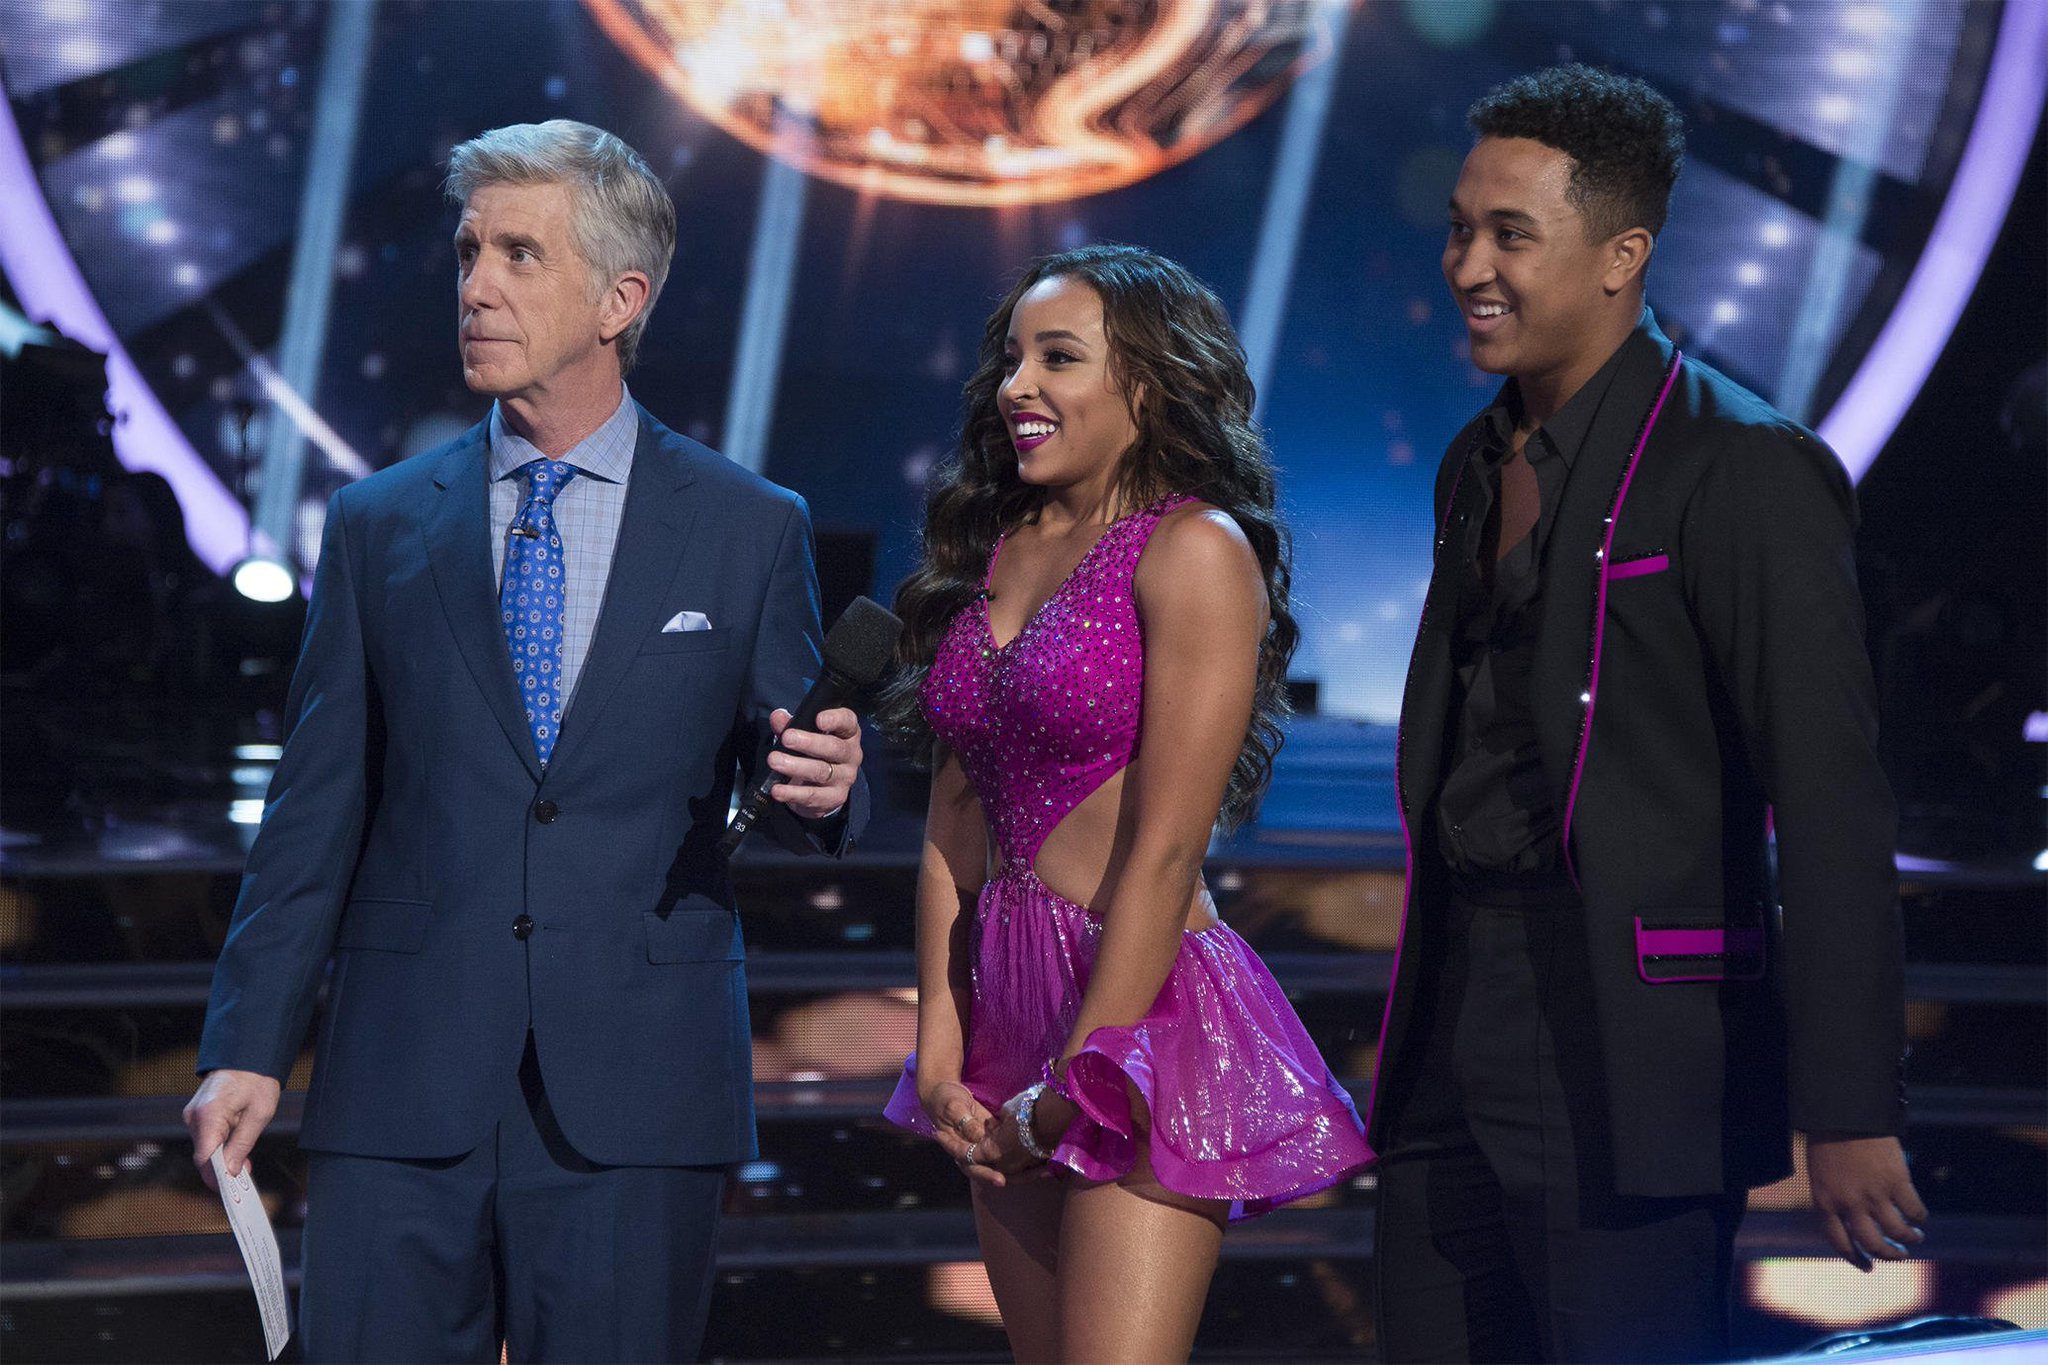 .@Tinashe got the highest mark of the night on her first @DancingABC appearance. https://t.co/TKpIaGgXZd https://t.co/DK4bbKpAZP